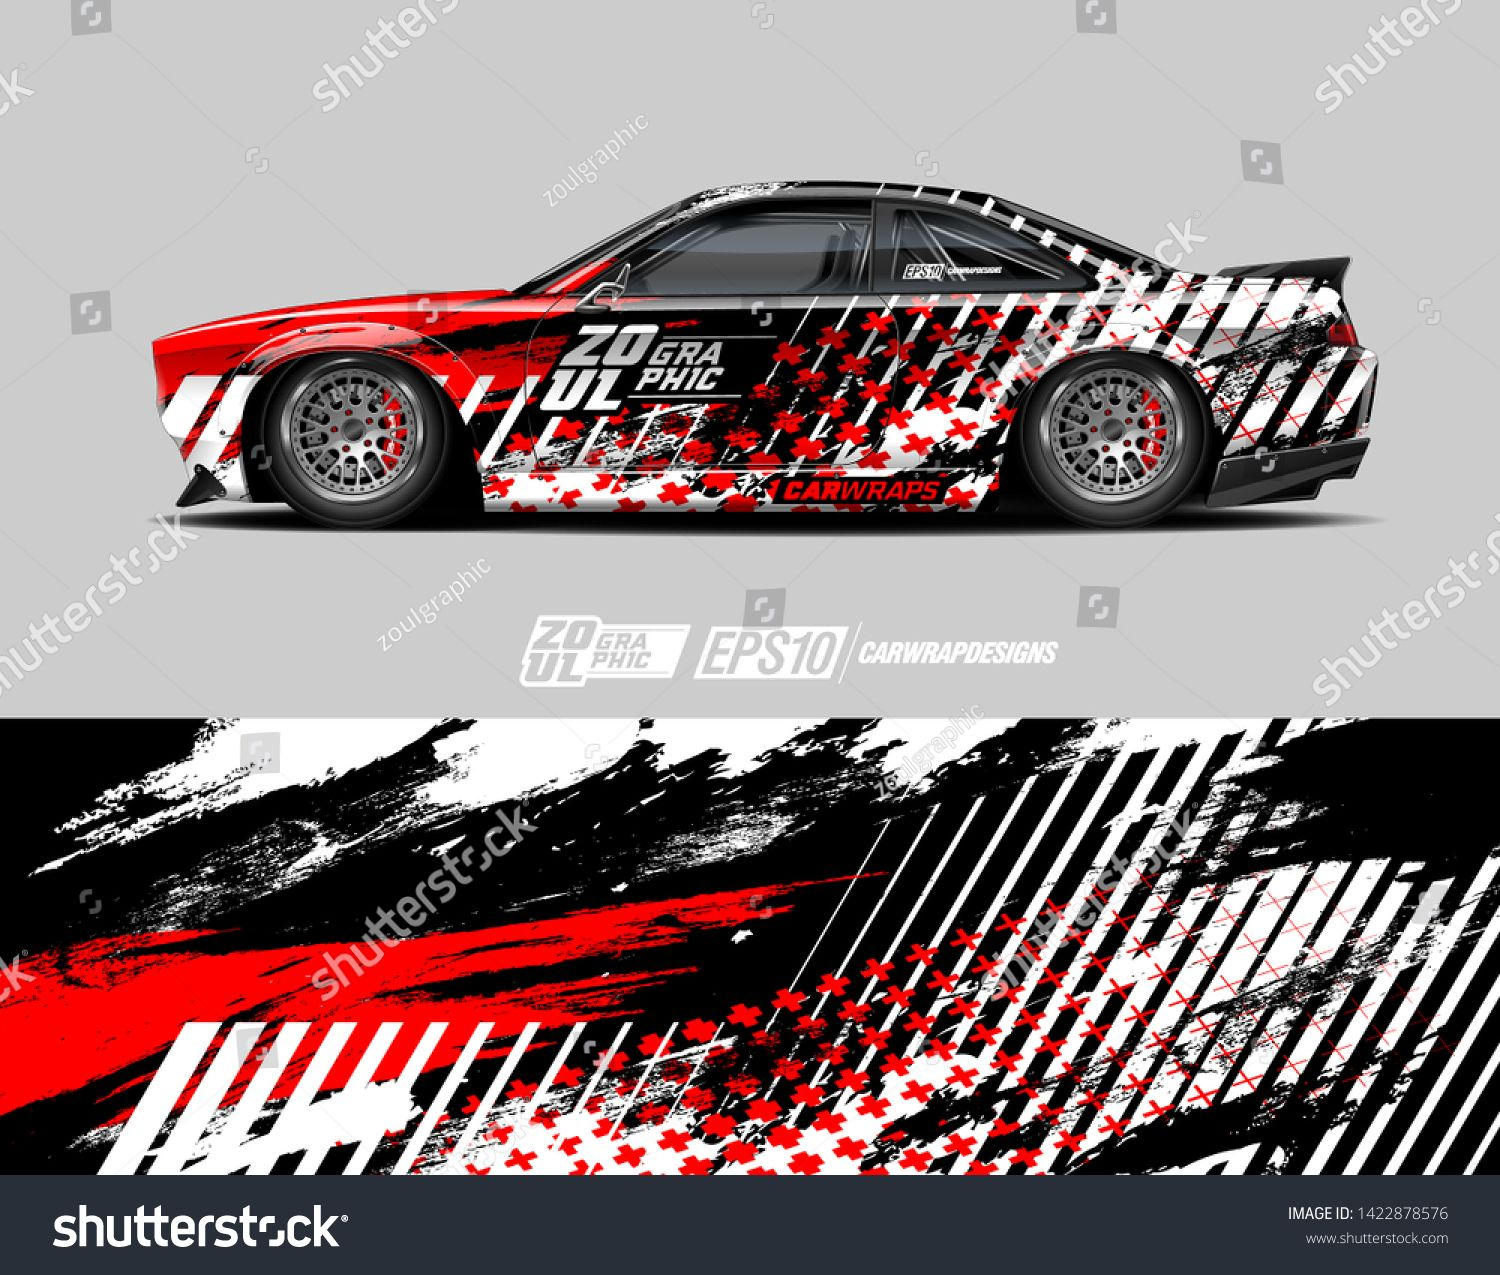 Car Wrap Decal Design Concept Abstract Grunge Background For Wrap